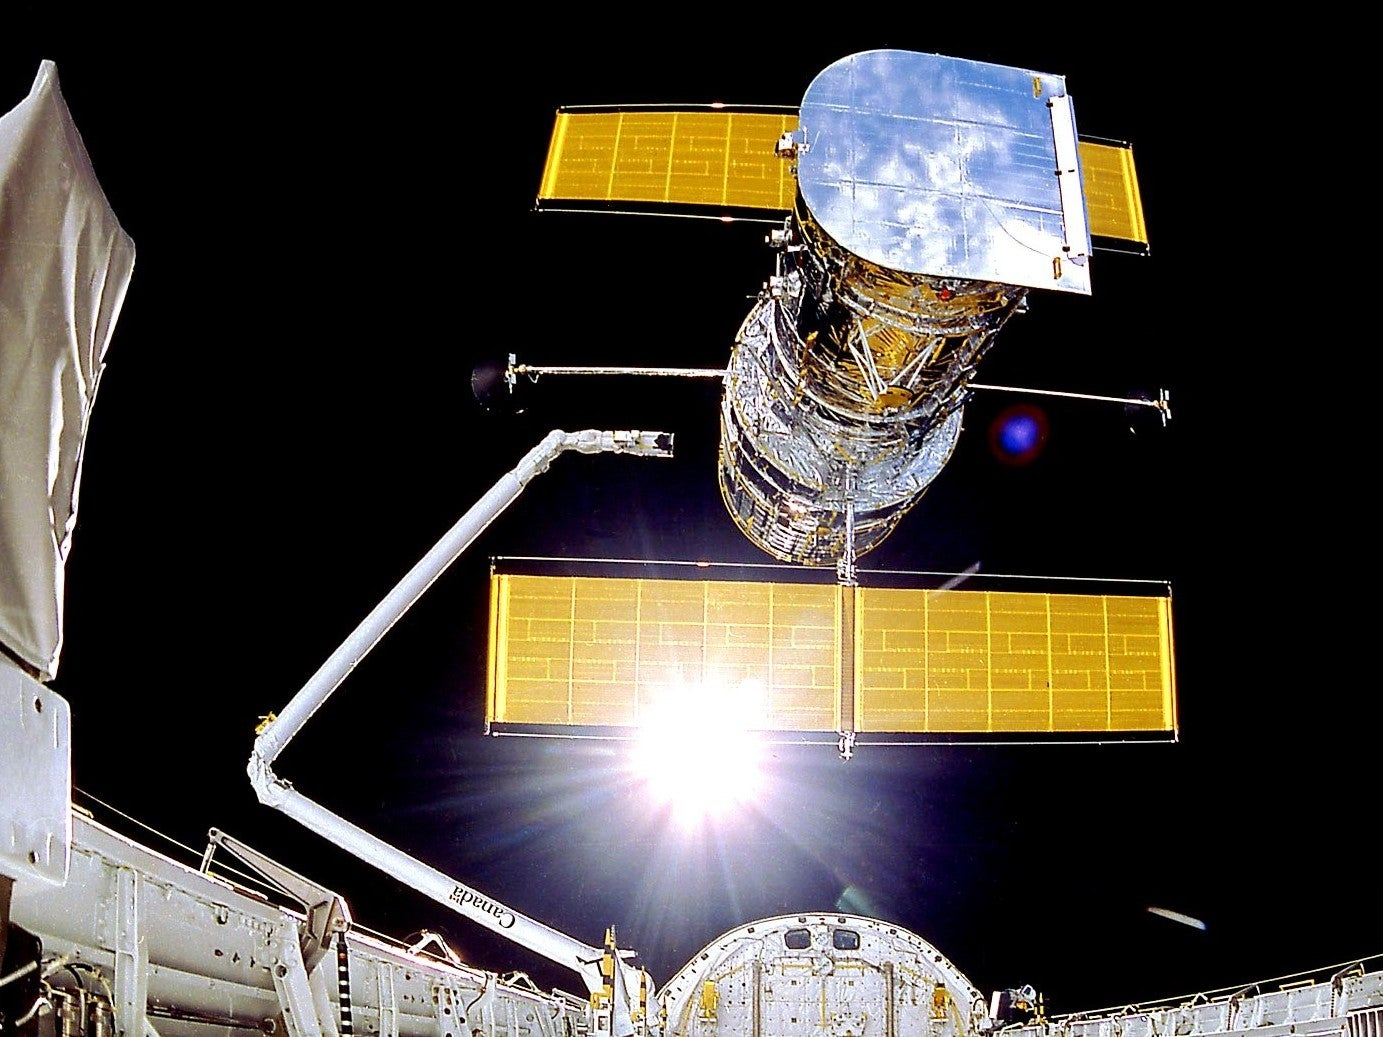 The Hubble Space Telescope, with its yellow solar panels featured prominently.